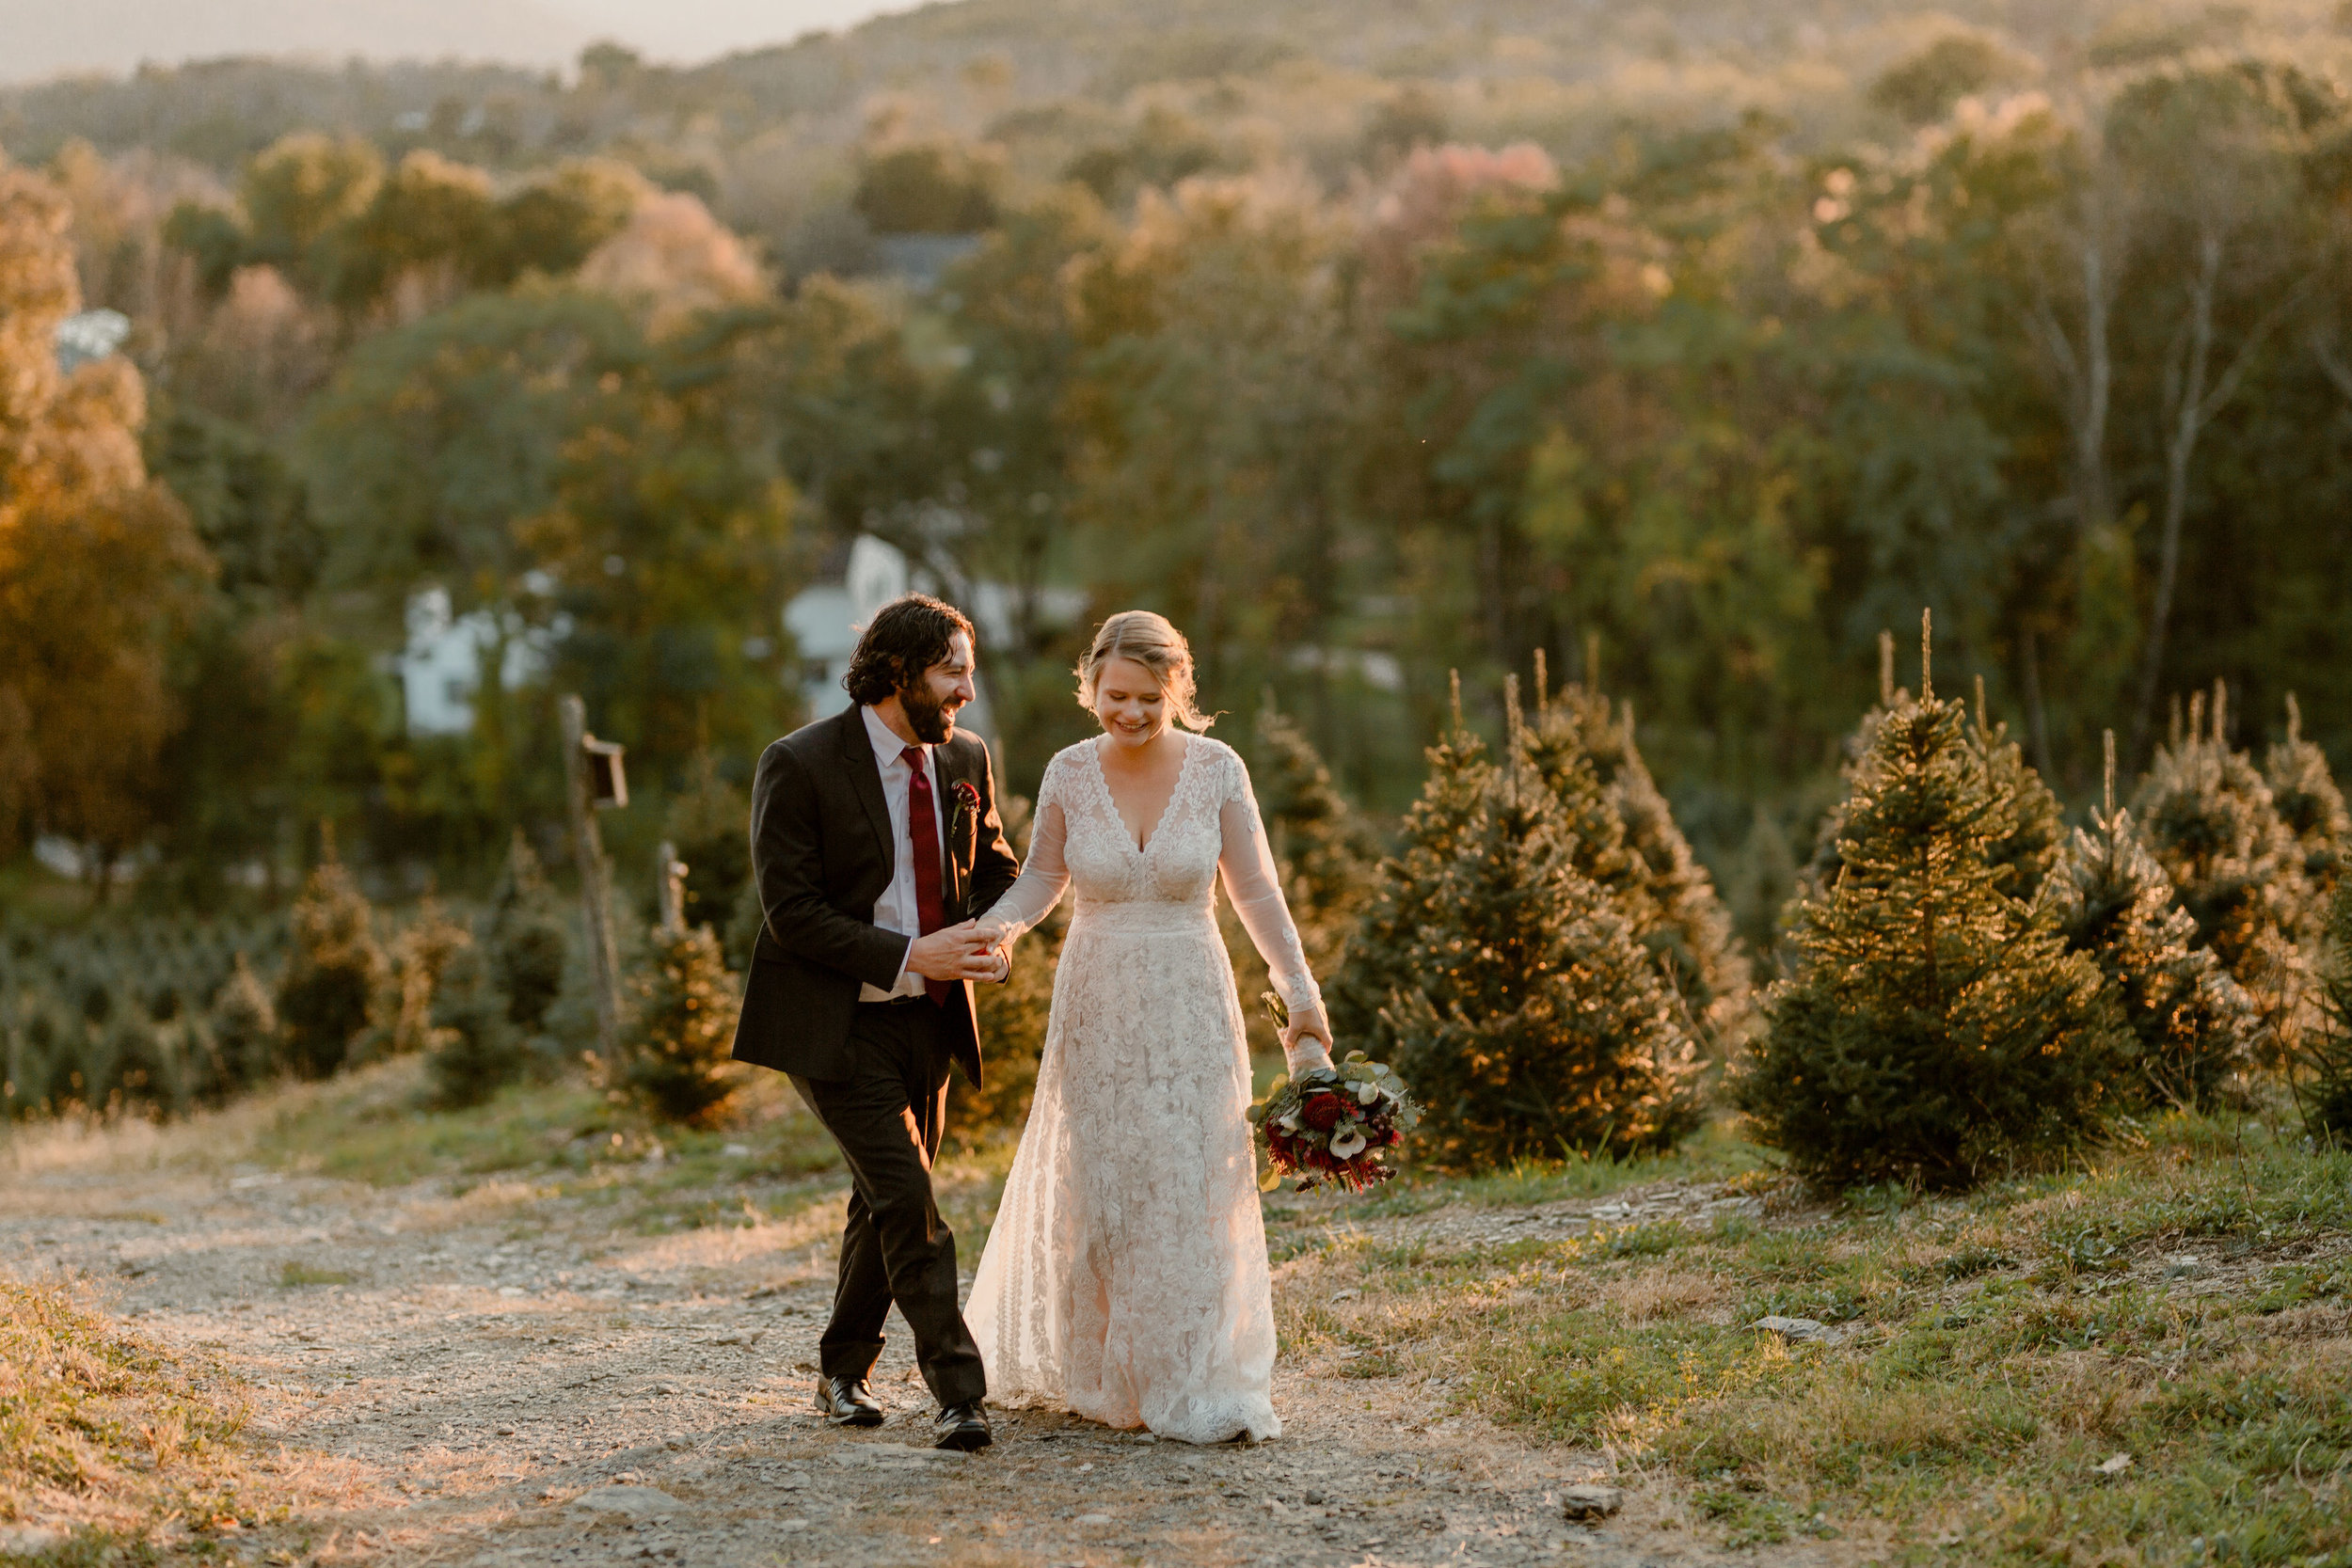 young-love-media-rustic-fall-autumn-wedding-emmerich-tree-farm-hudson-valley-warwick-new-york-first-look-338.jpg